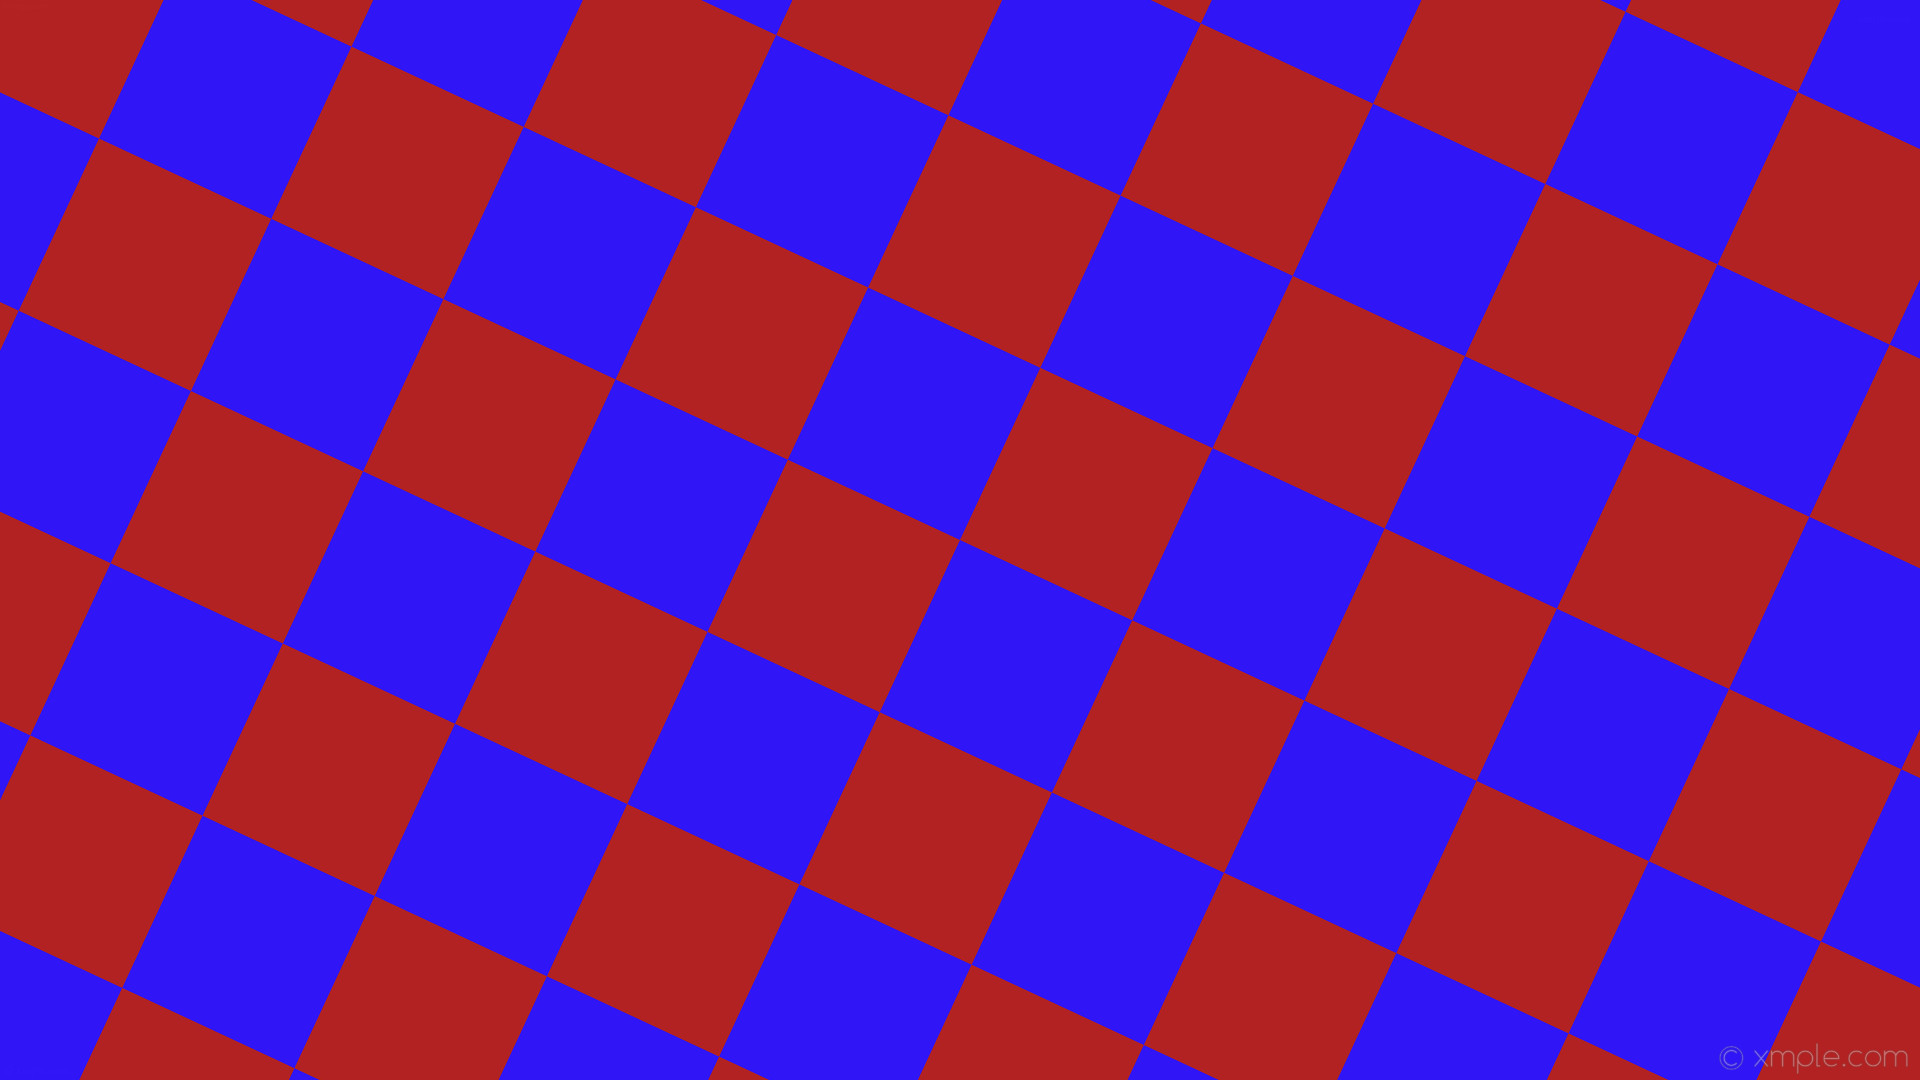 1920x1080 wallpaper red blue checkered squares fire brick #b22222 #3015f7 diagonal  65° 190px